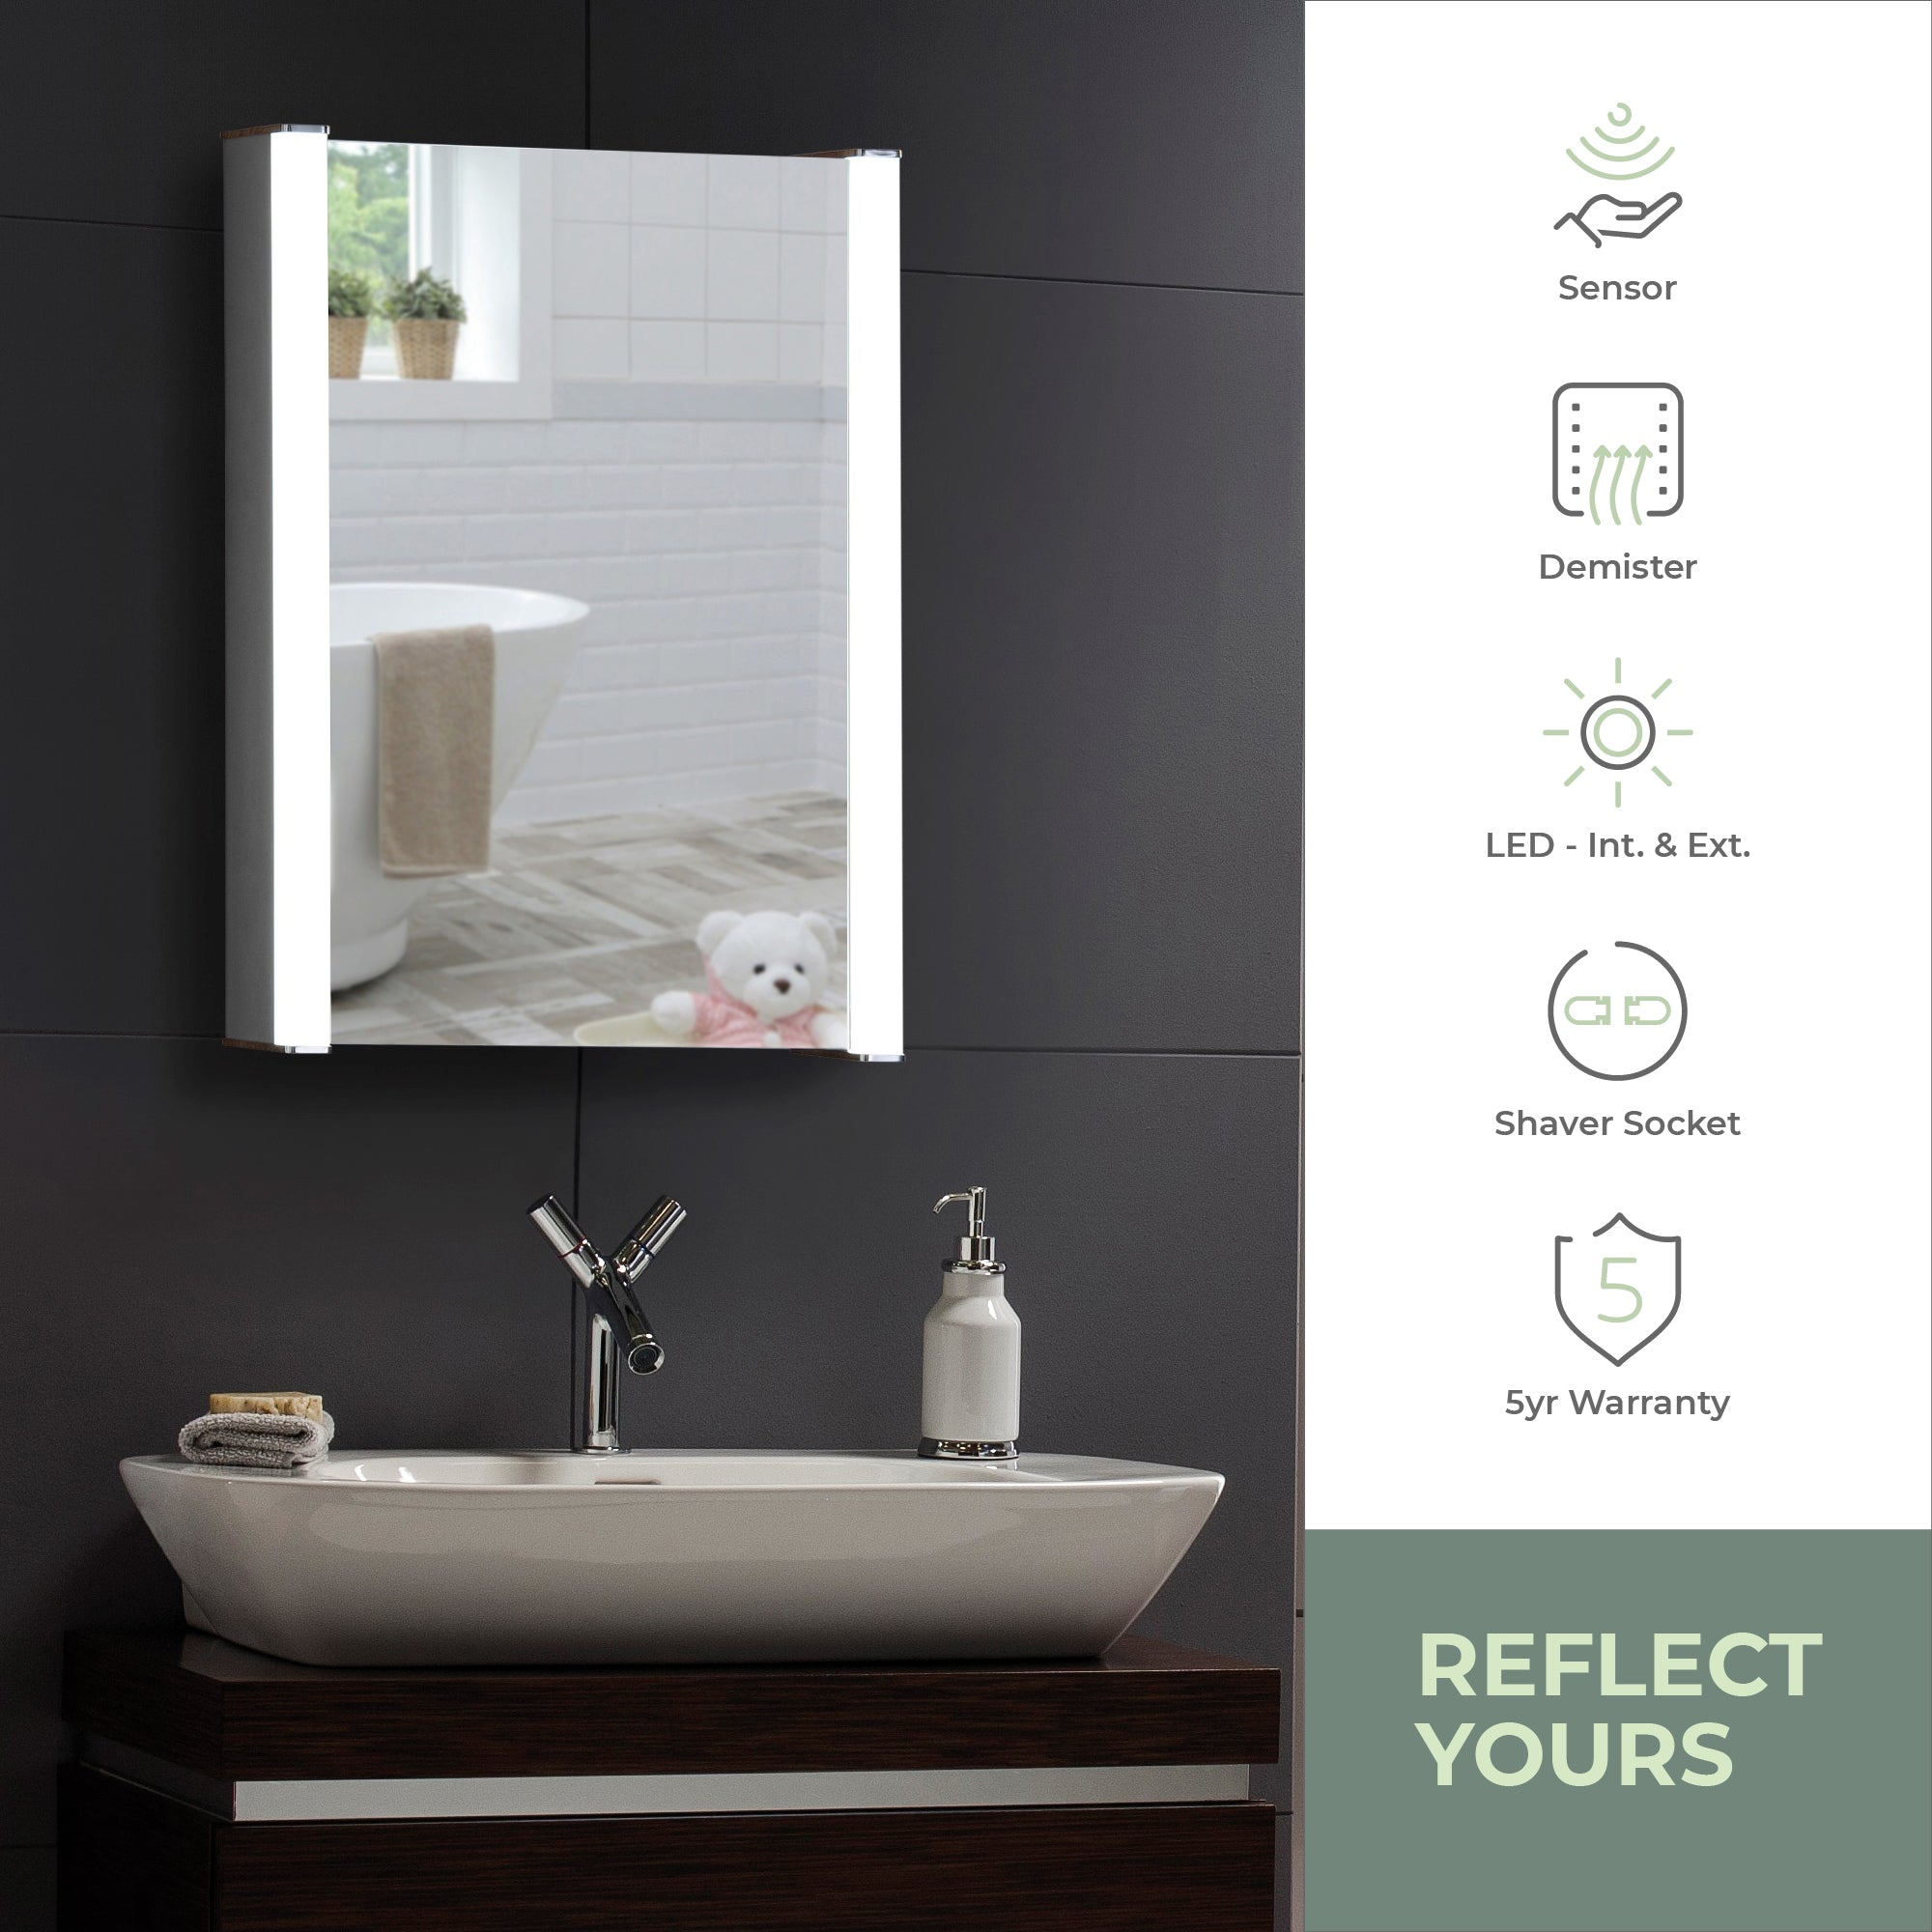 LED Illuminated Bathroom Mirror Cabinet CABM11: Size-70Hx50Wx16Dcm